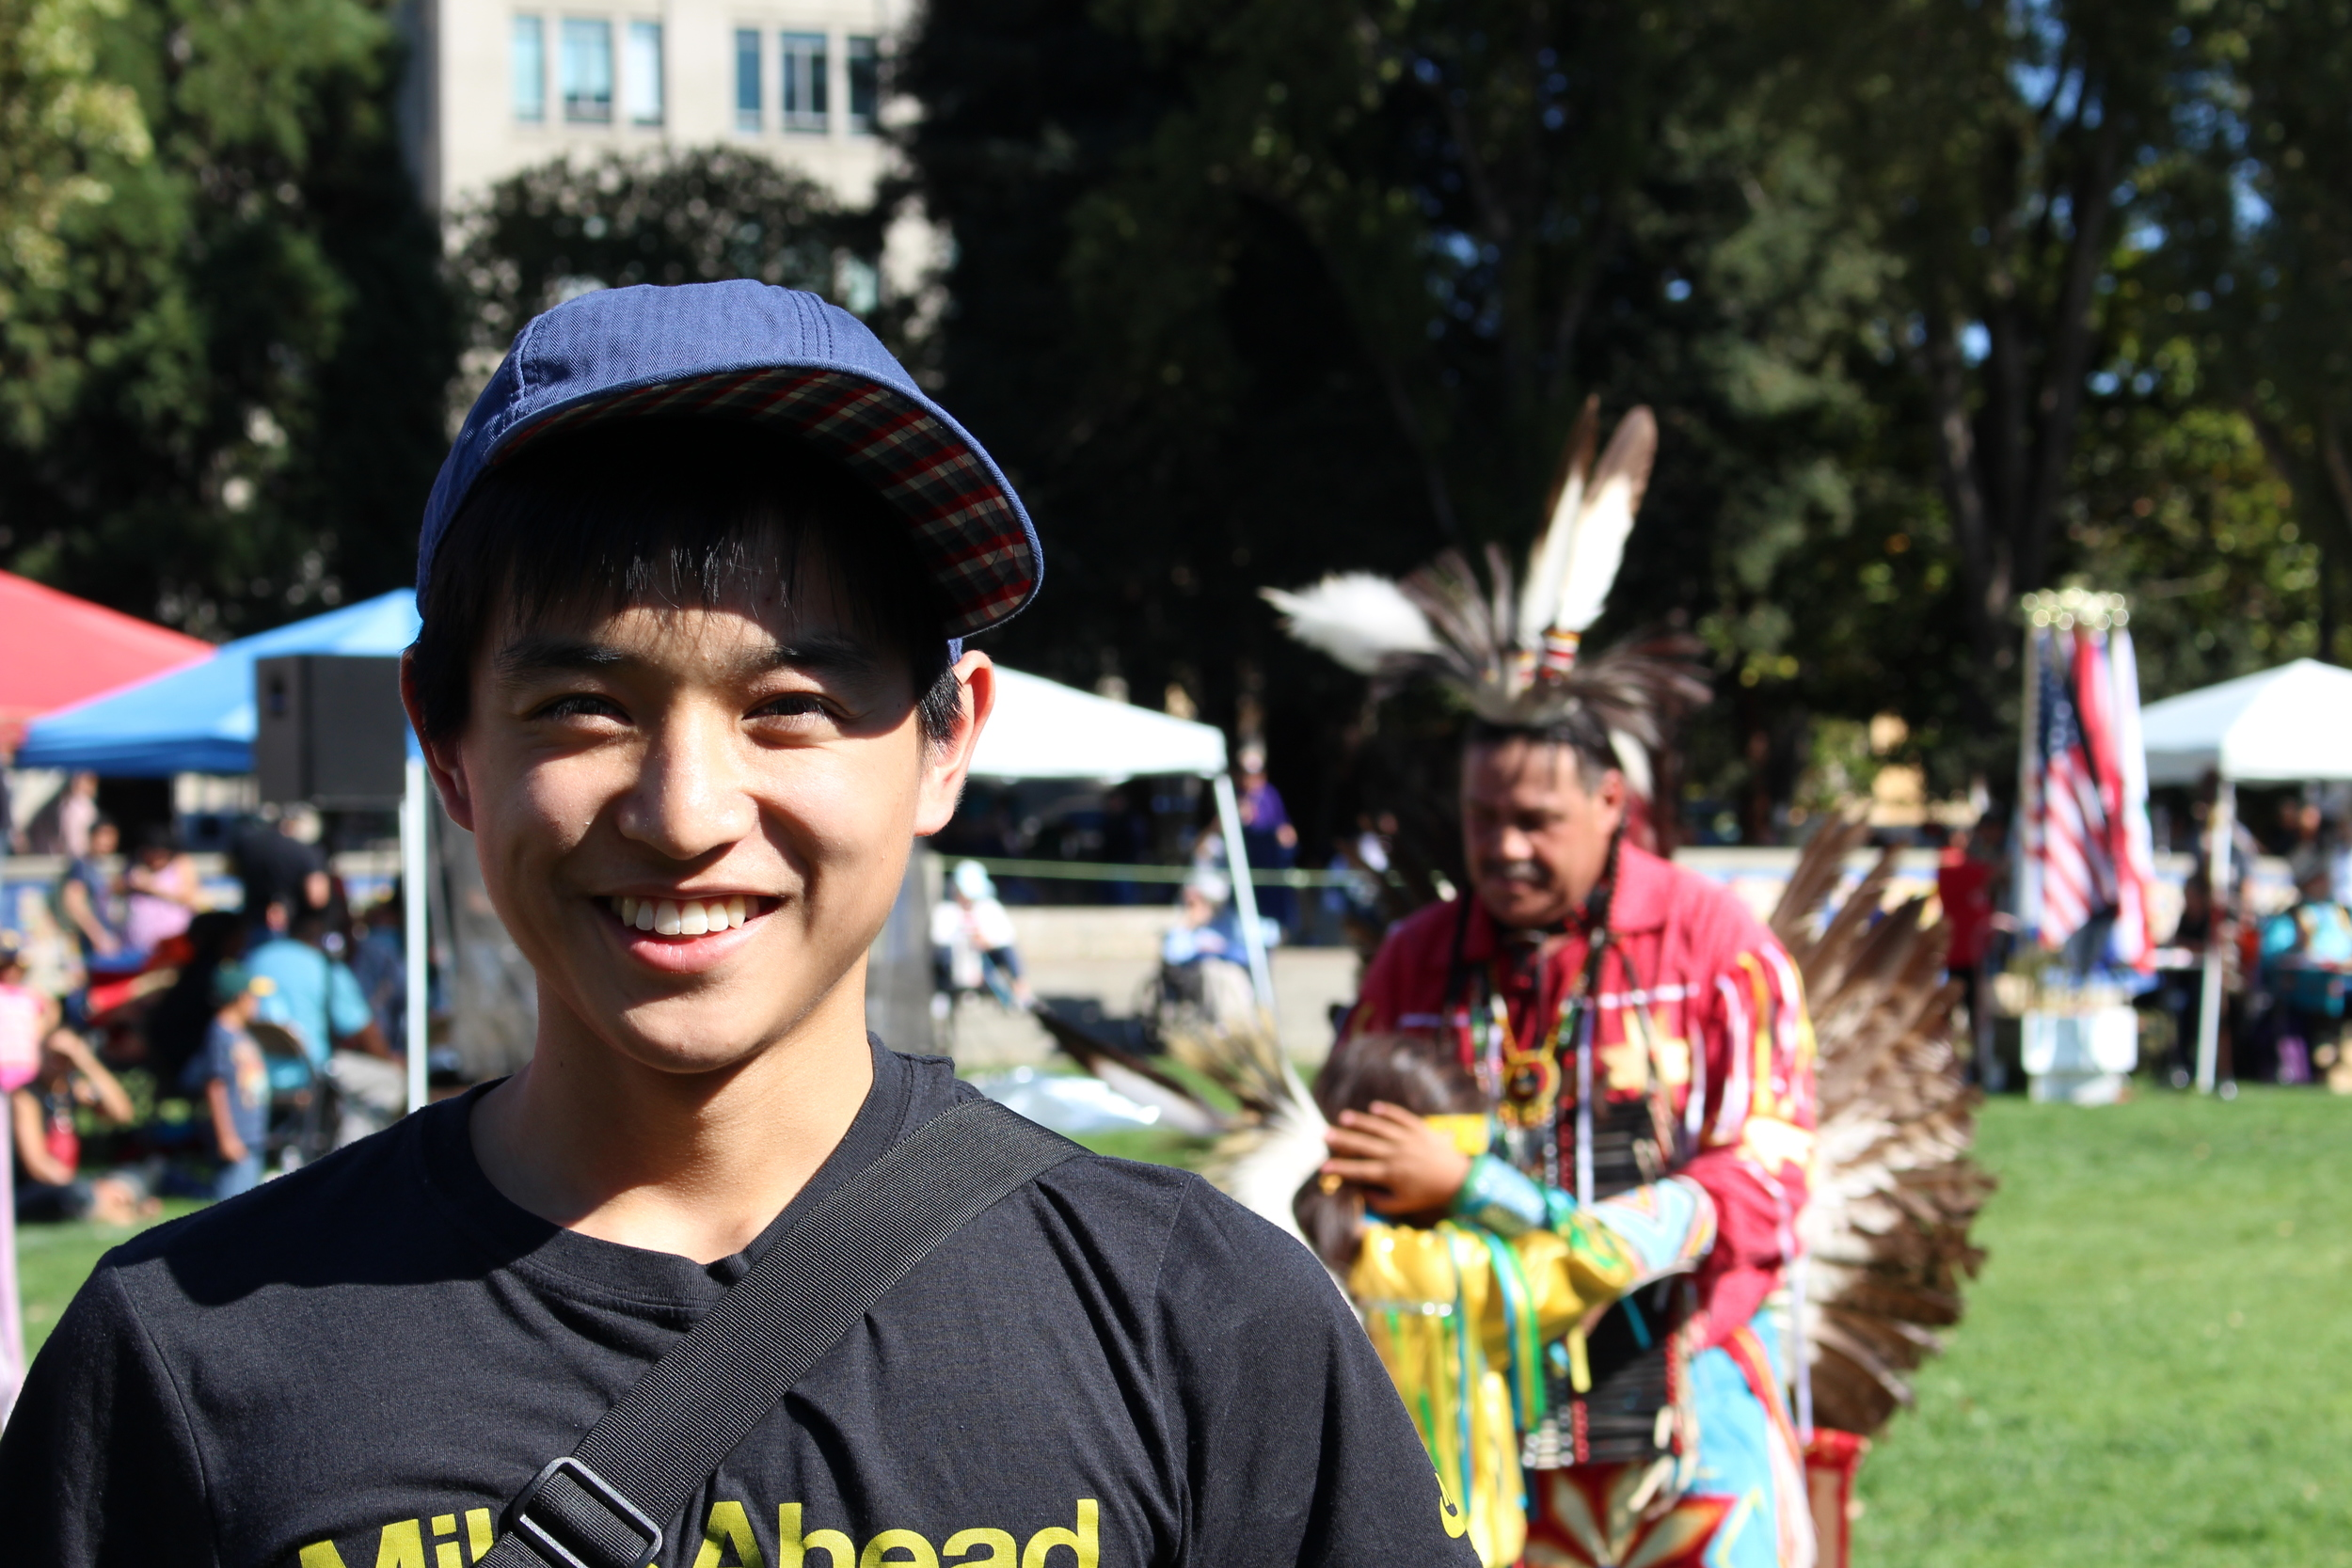 Me attending at the Indigenous Peoples Day event in Berkeley, CA